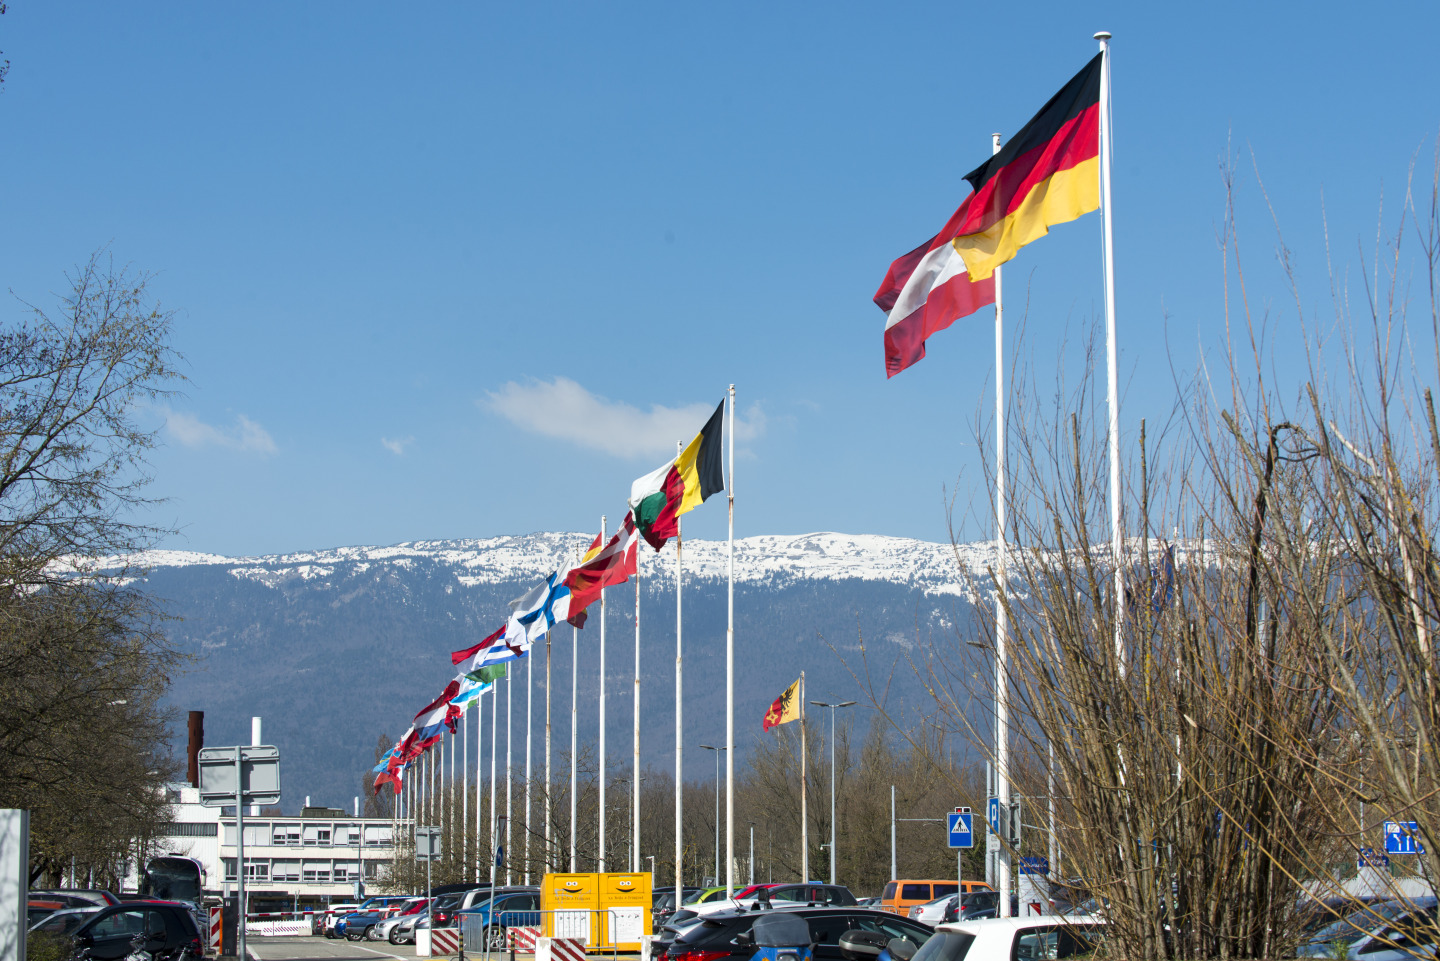 Pictures of the CERN Flags - April 2014